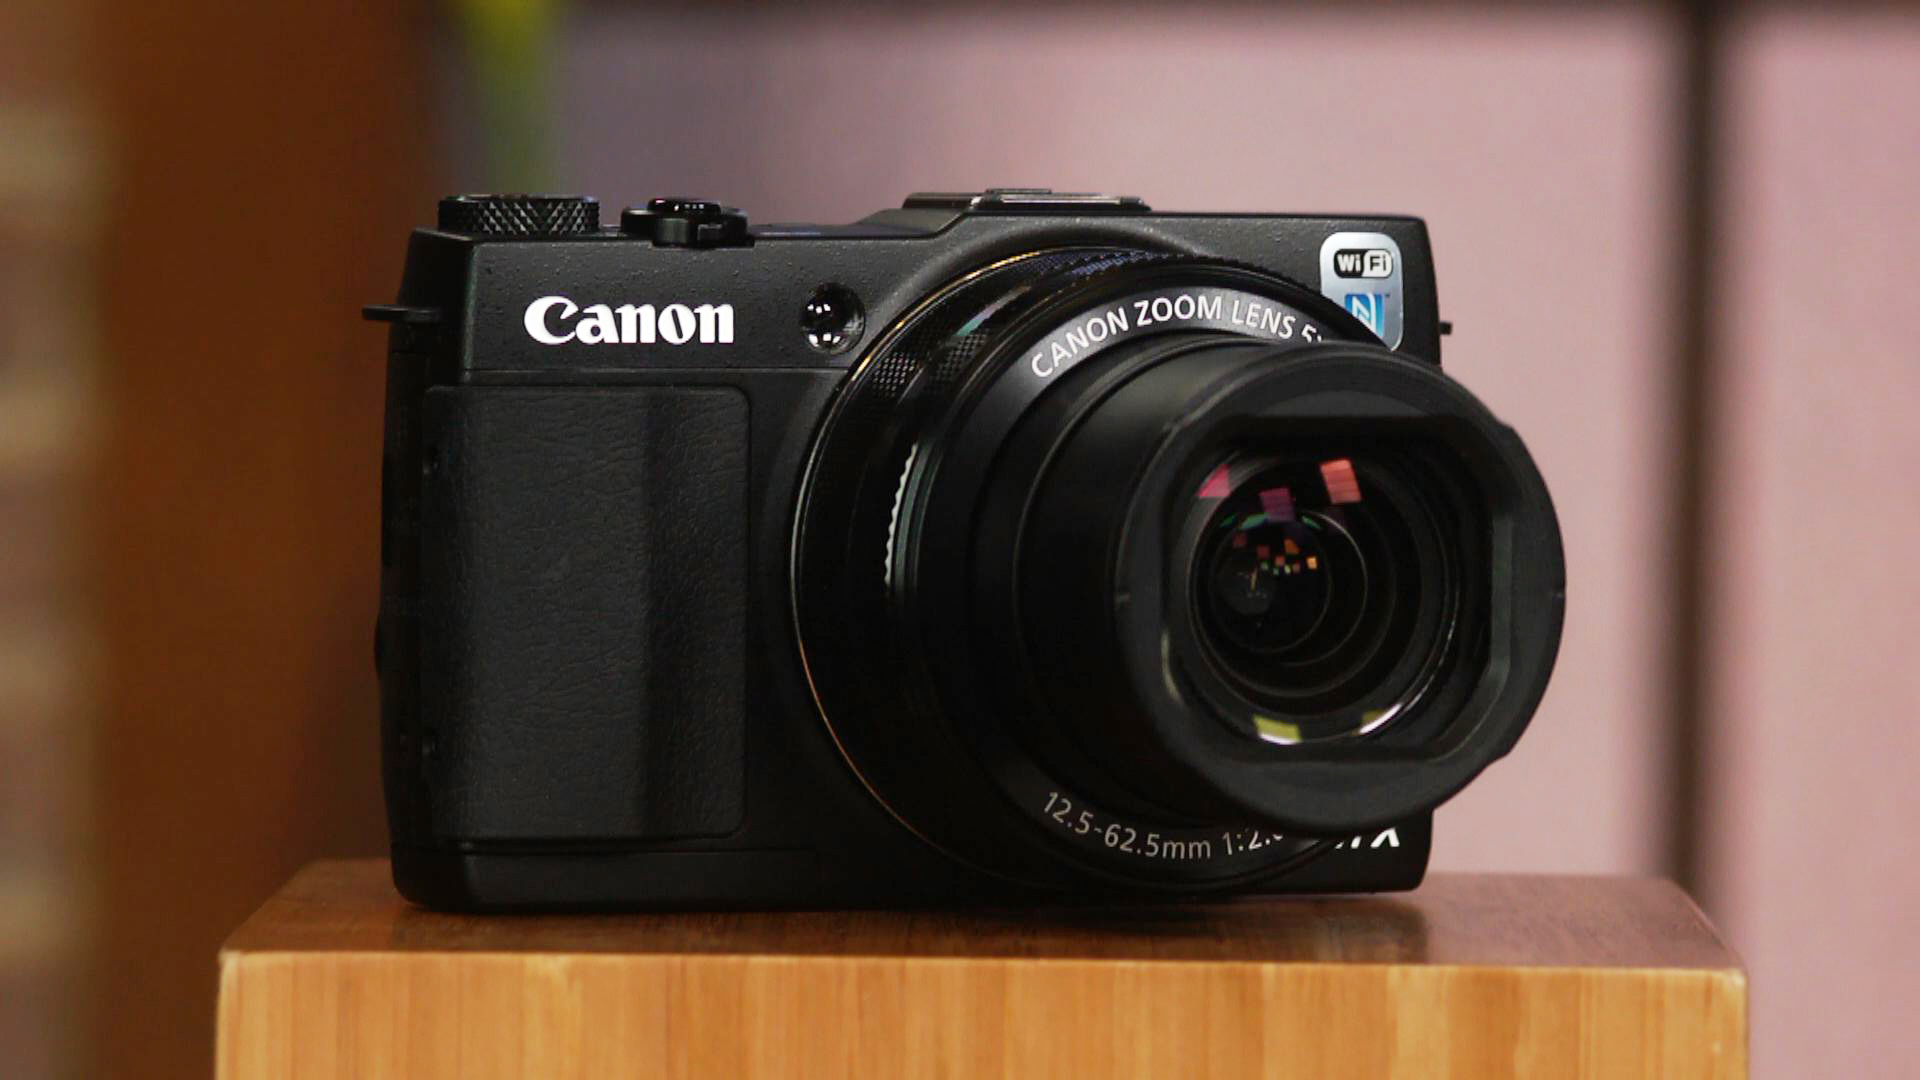 Video: ​Canon PowerShot G1 X Mark II: big camera, big lens​ ​, minor disappointment​